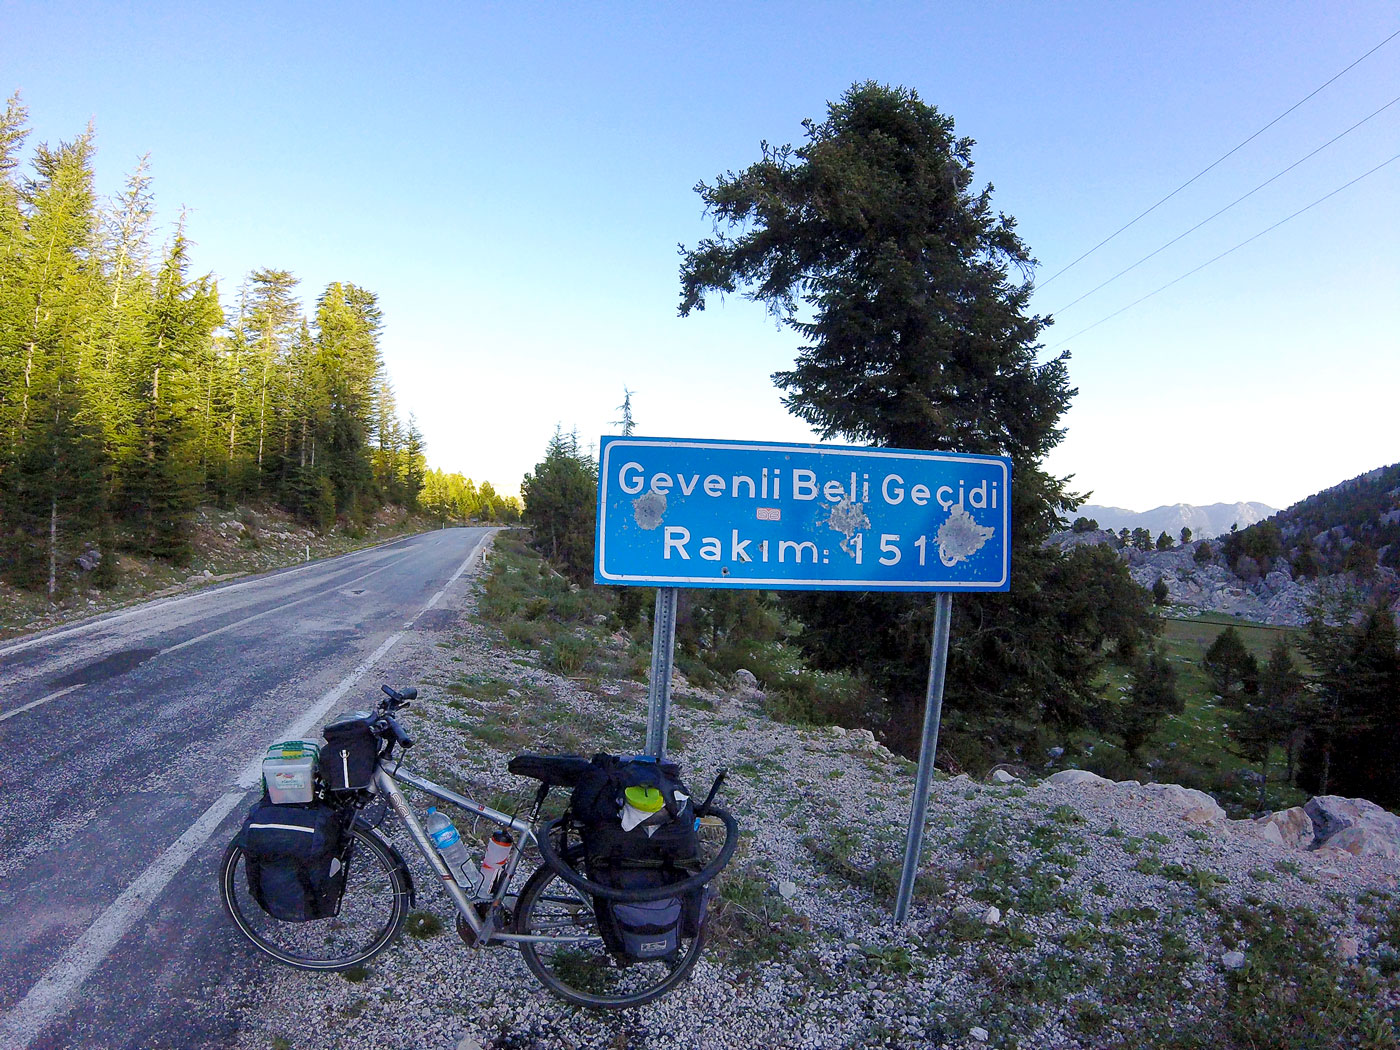 Turkey by bike, 1510 meters above sea level. Cycling Turquey, at an altitude of 1510 meters.